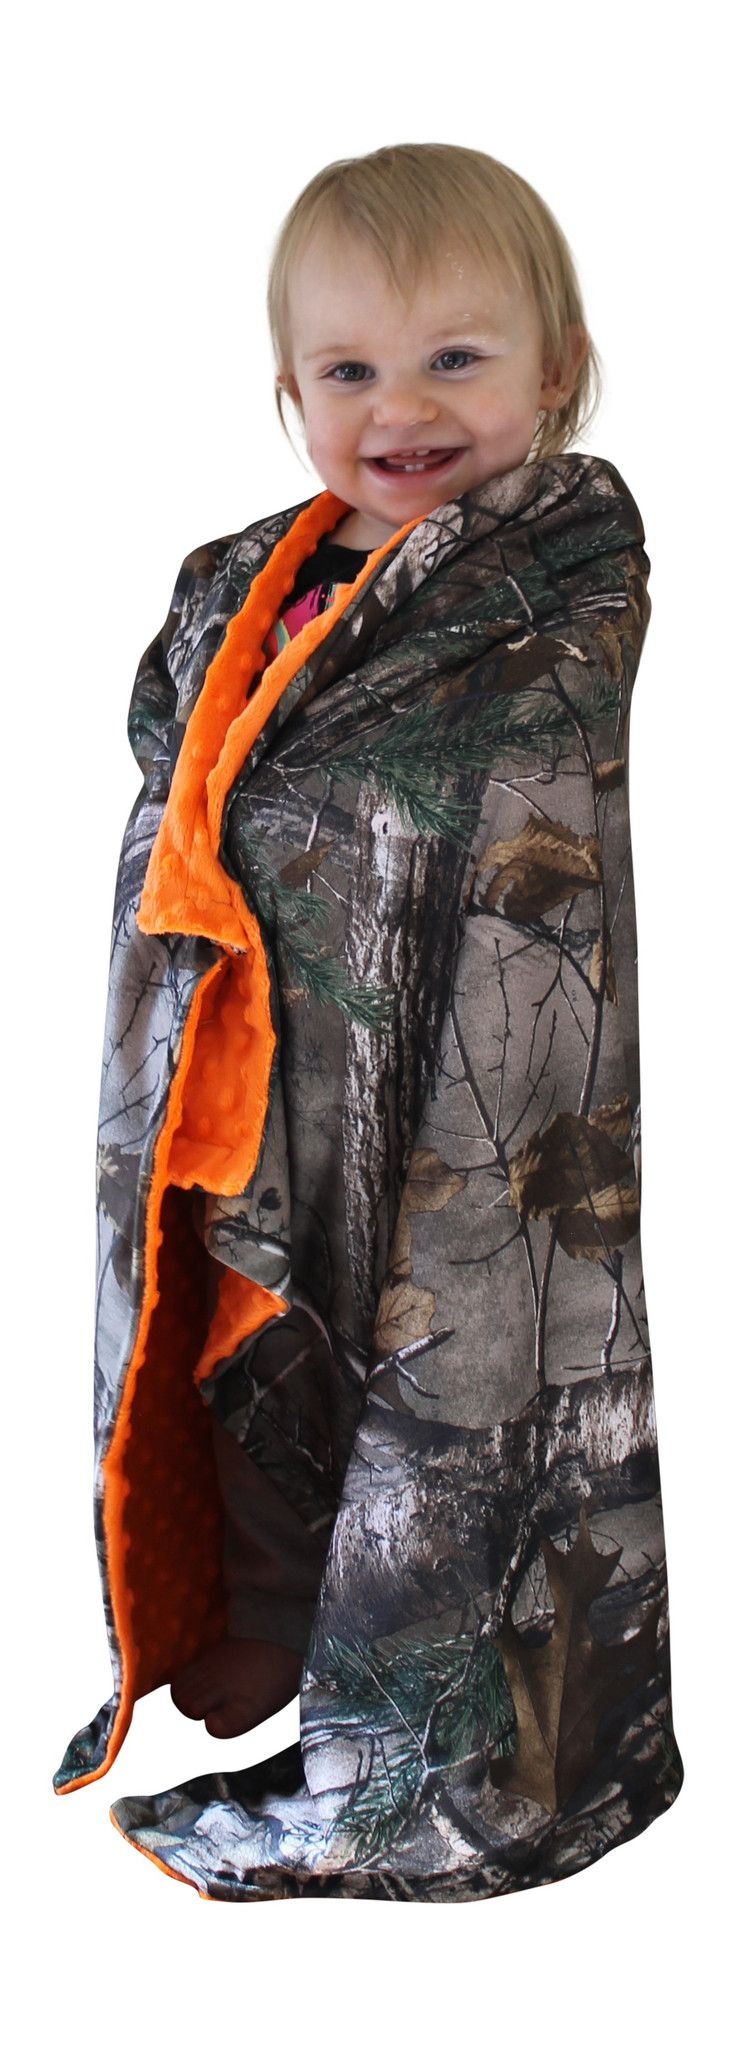 Camo Baby Blanket Realtree Xtra Minky Dot Blaze Camouflage Baby Boy Girl Redneck Country Gift Made in USA Officially Licensed